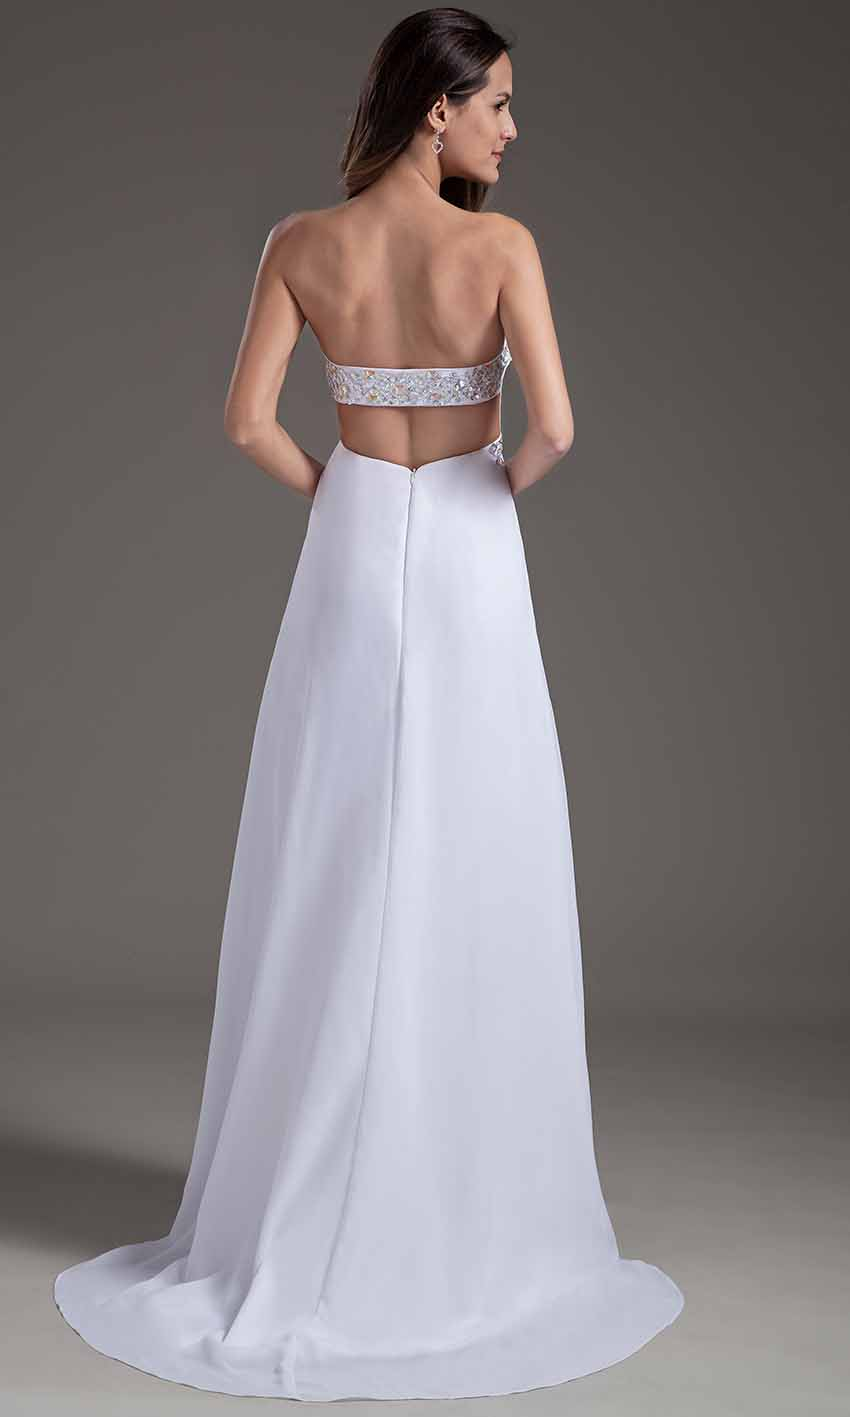 Open Back White Strapless Sequin Prom Dresses KSP355 [KSP355 ...